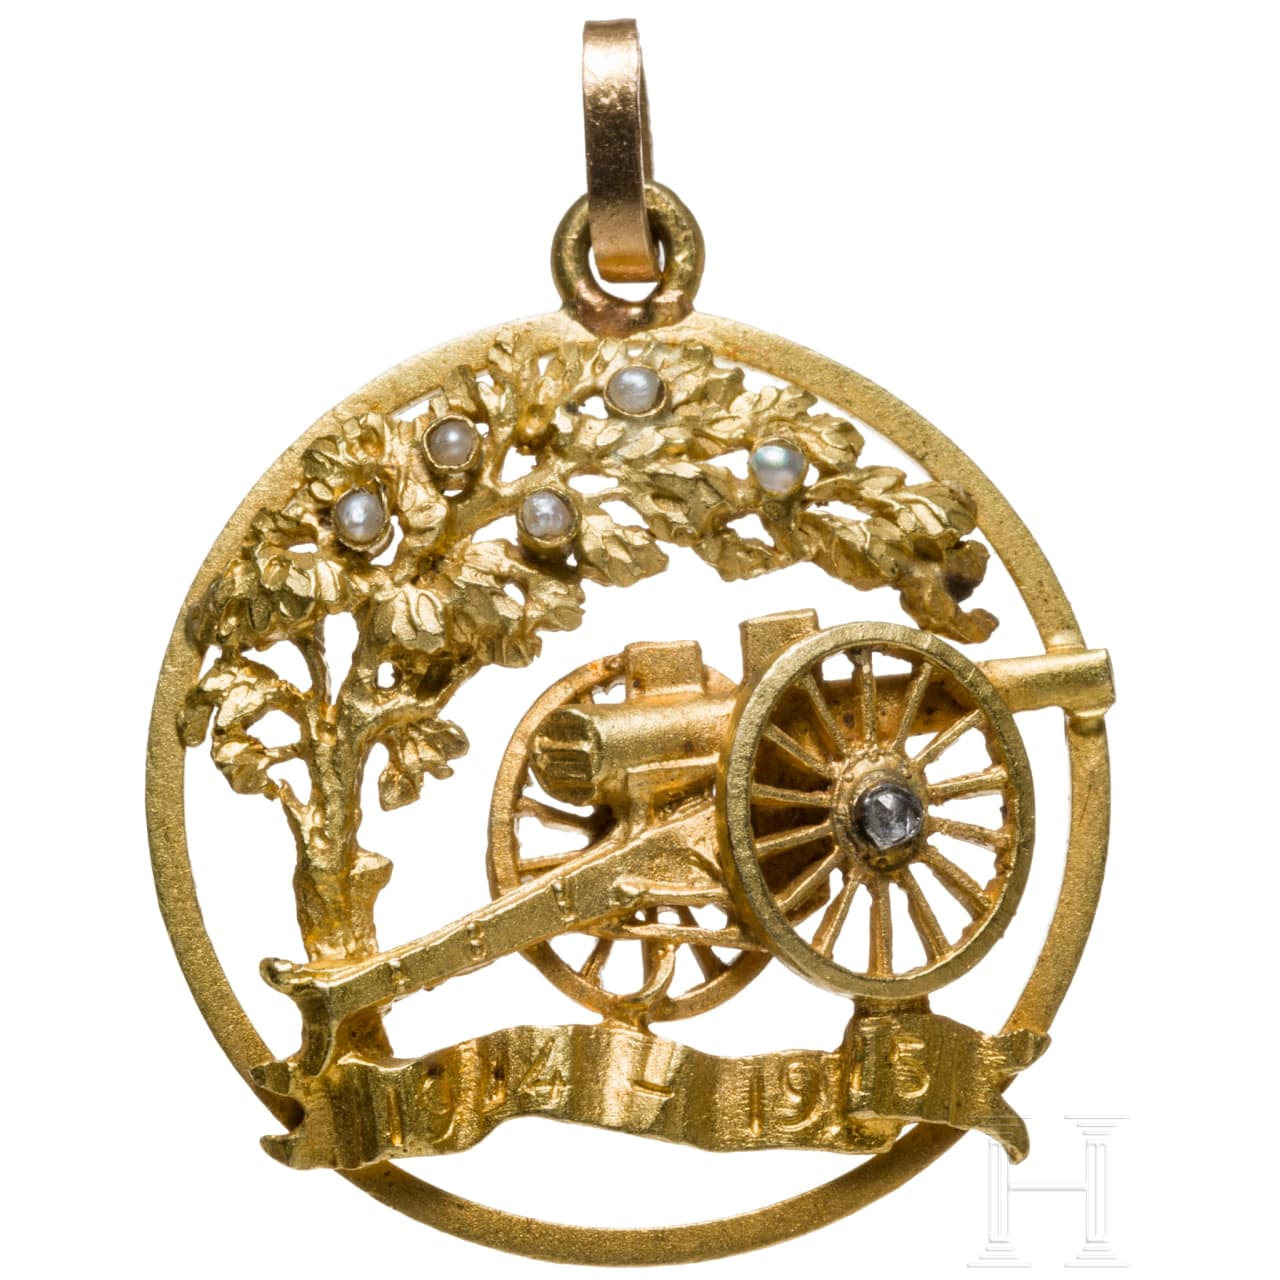 A patriotic German gold pendant, dated 1915